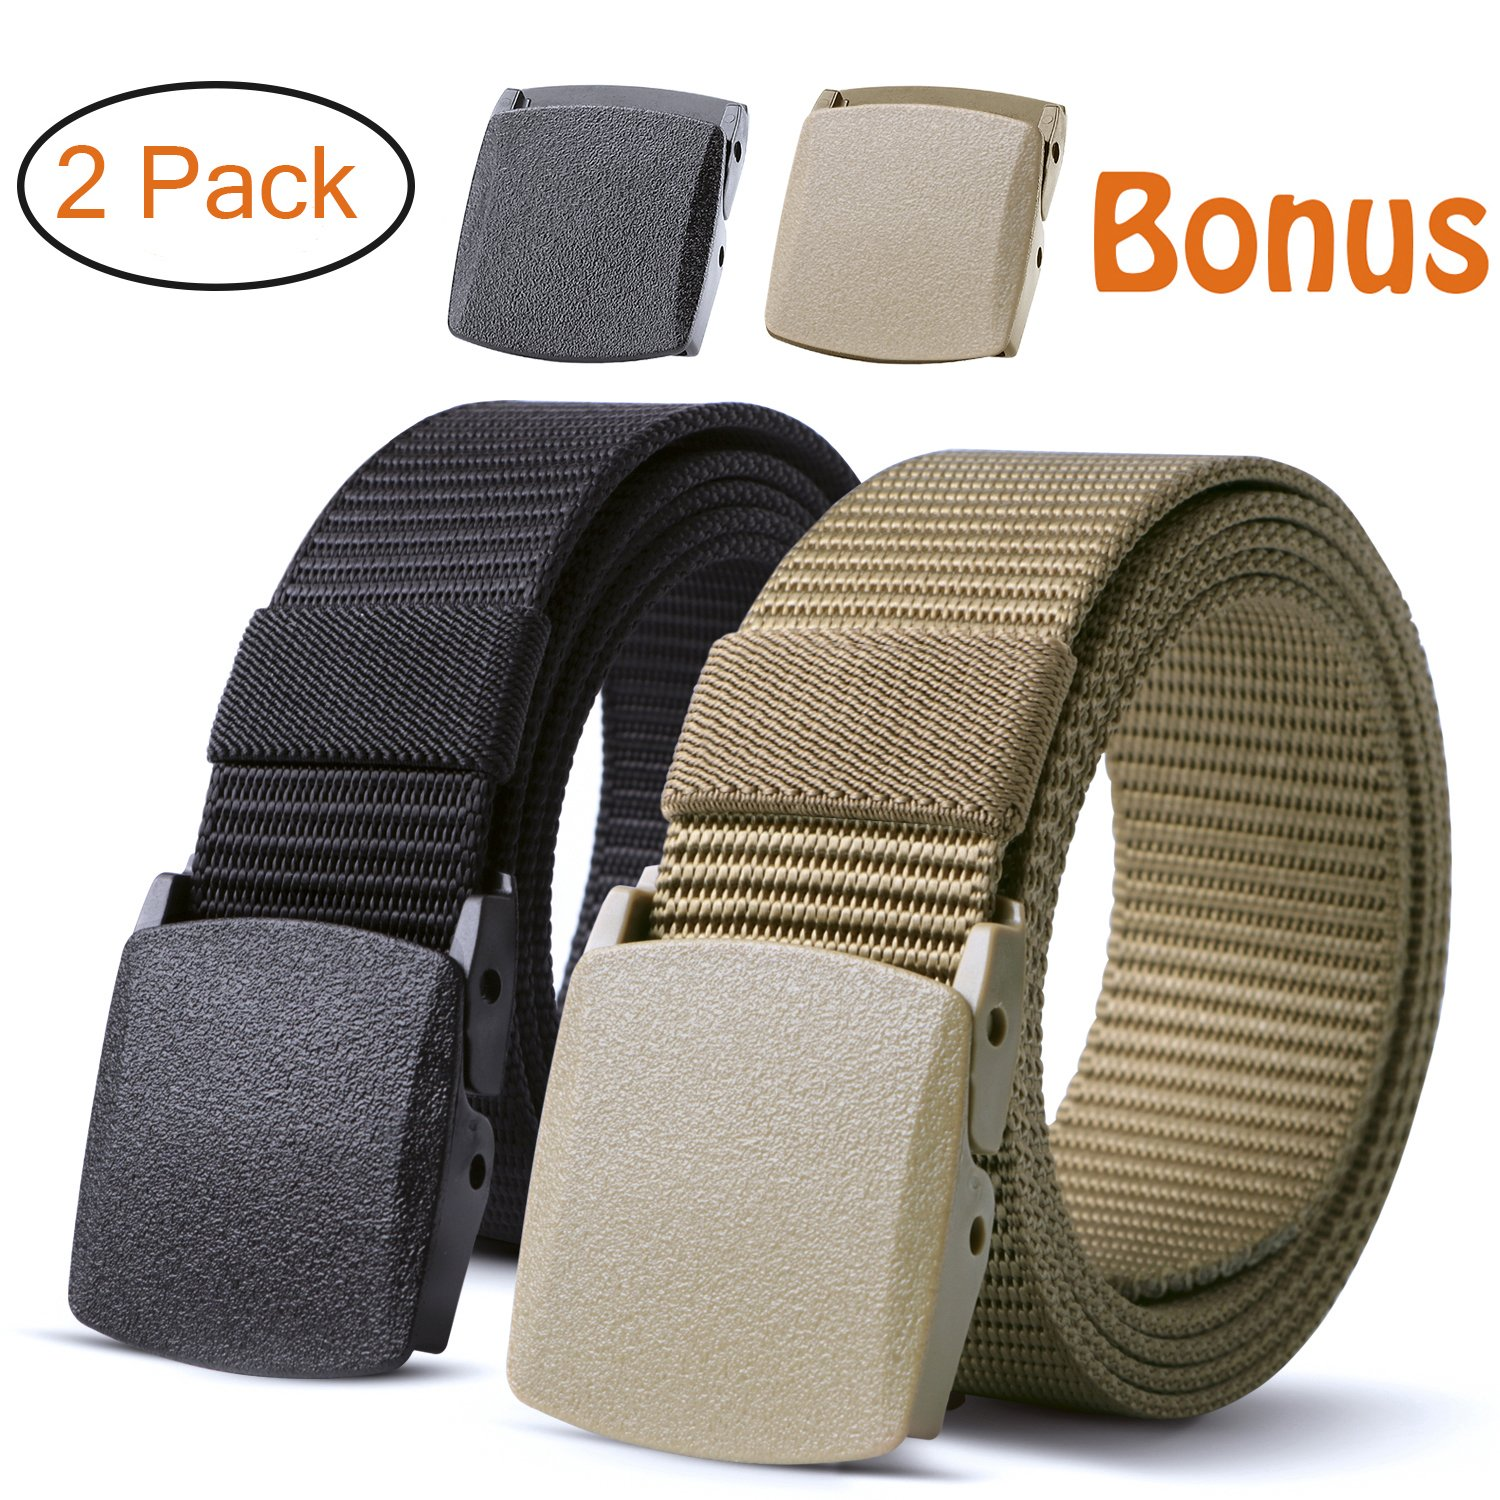 Nylon Military Tactical Belt 2 Pack Webbing Canvas Outdoor Web Belt With Plastic Buckle JASGOOD JA015-2pack